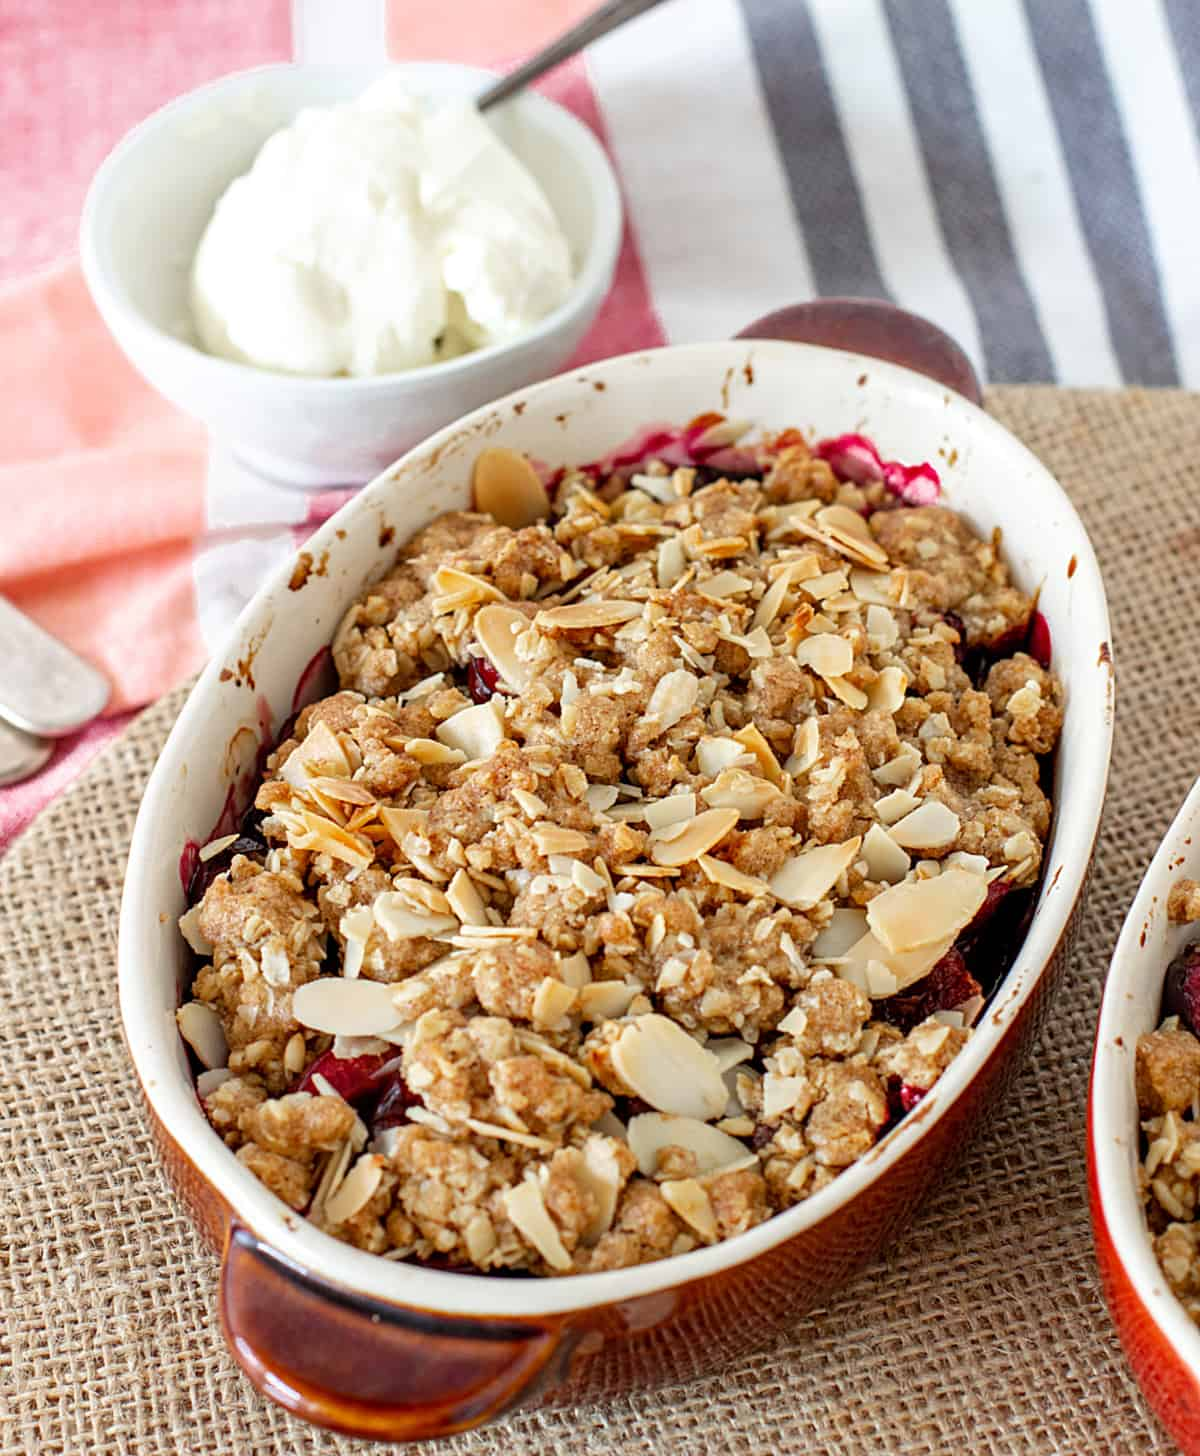 Brownish oval baked crumble on burlap surface, bowl with cream and striped towel in background